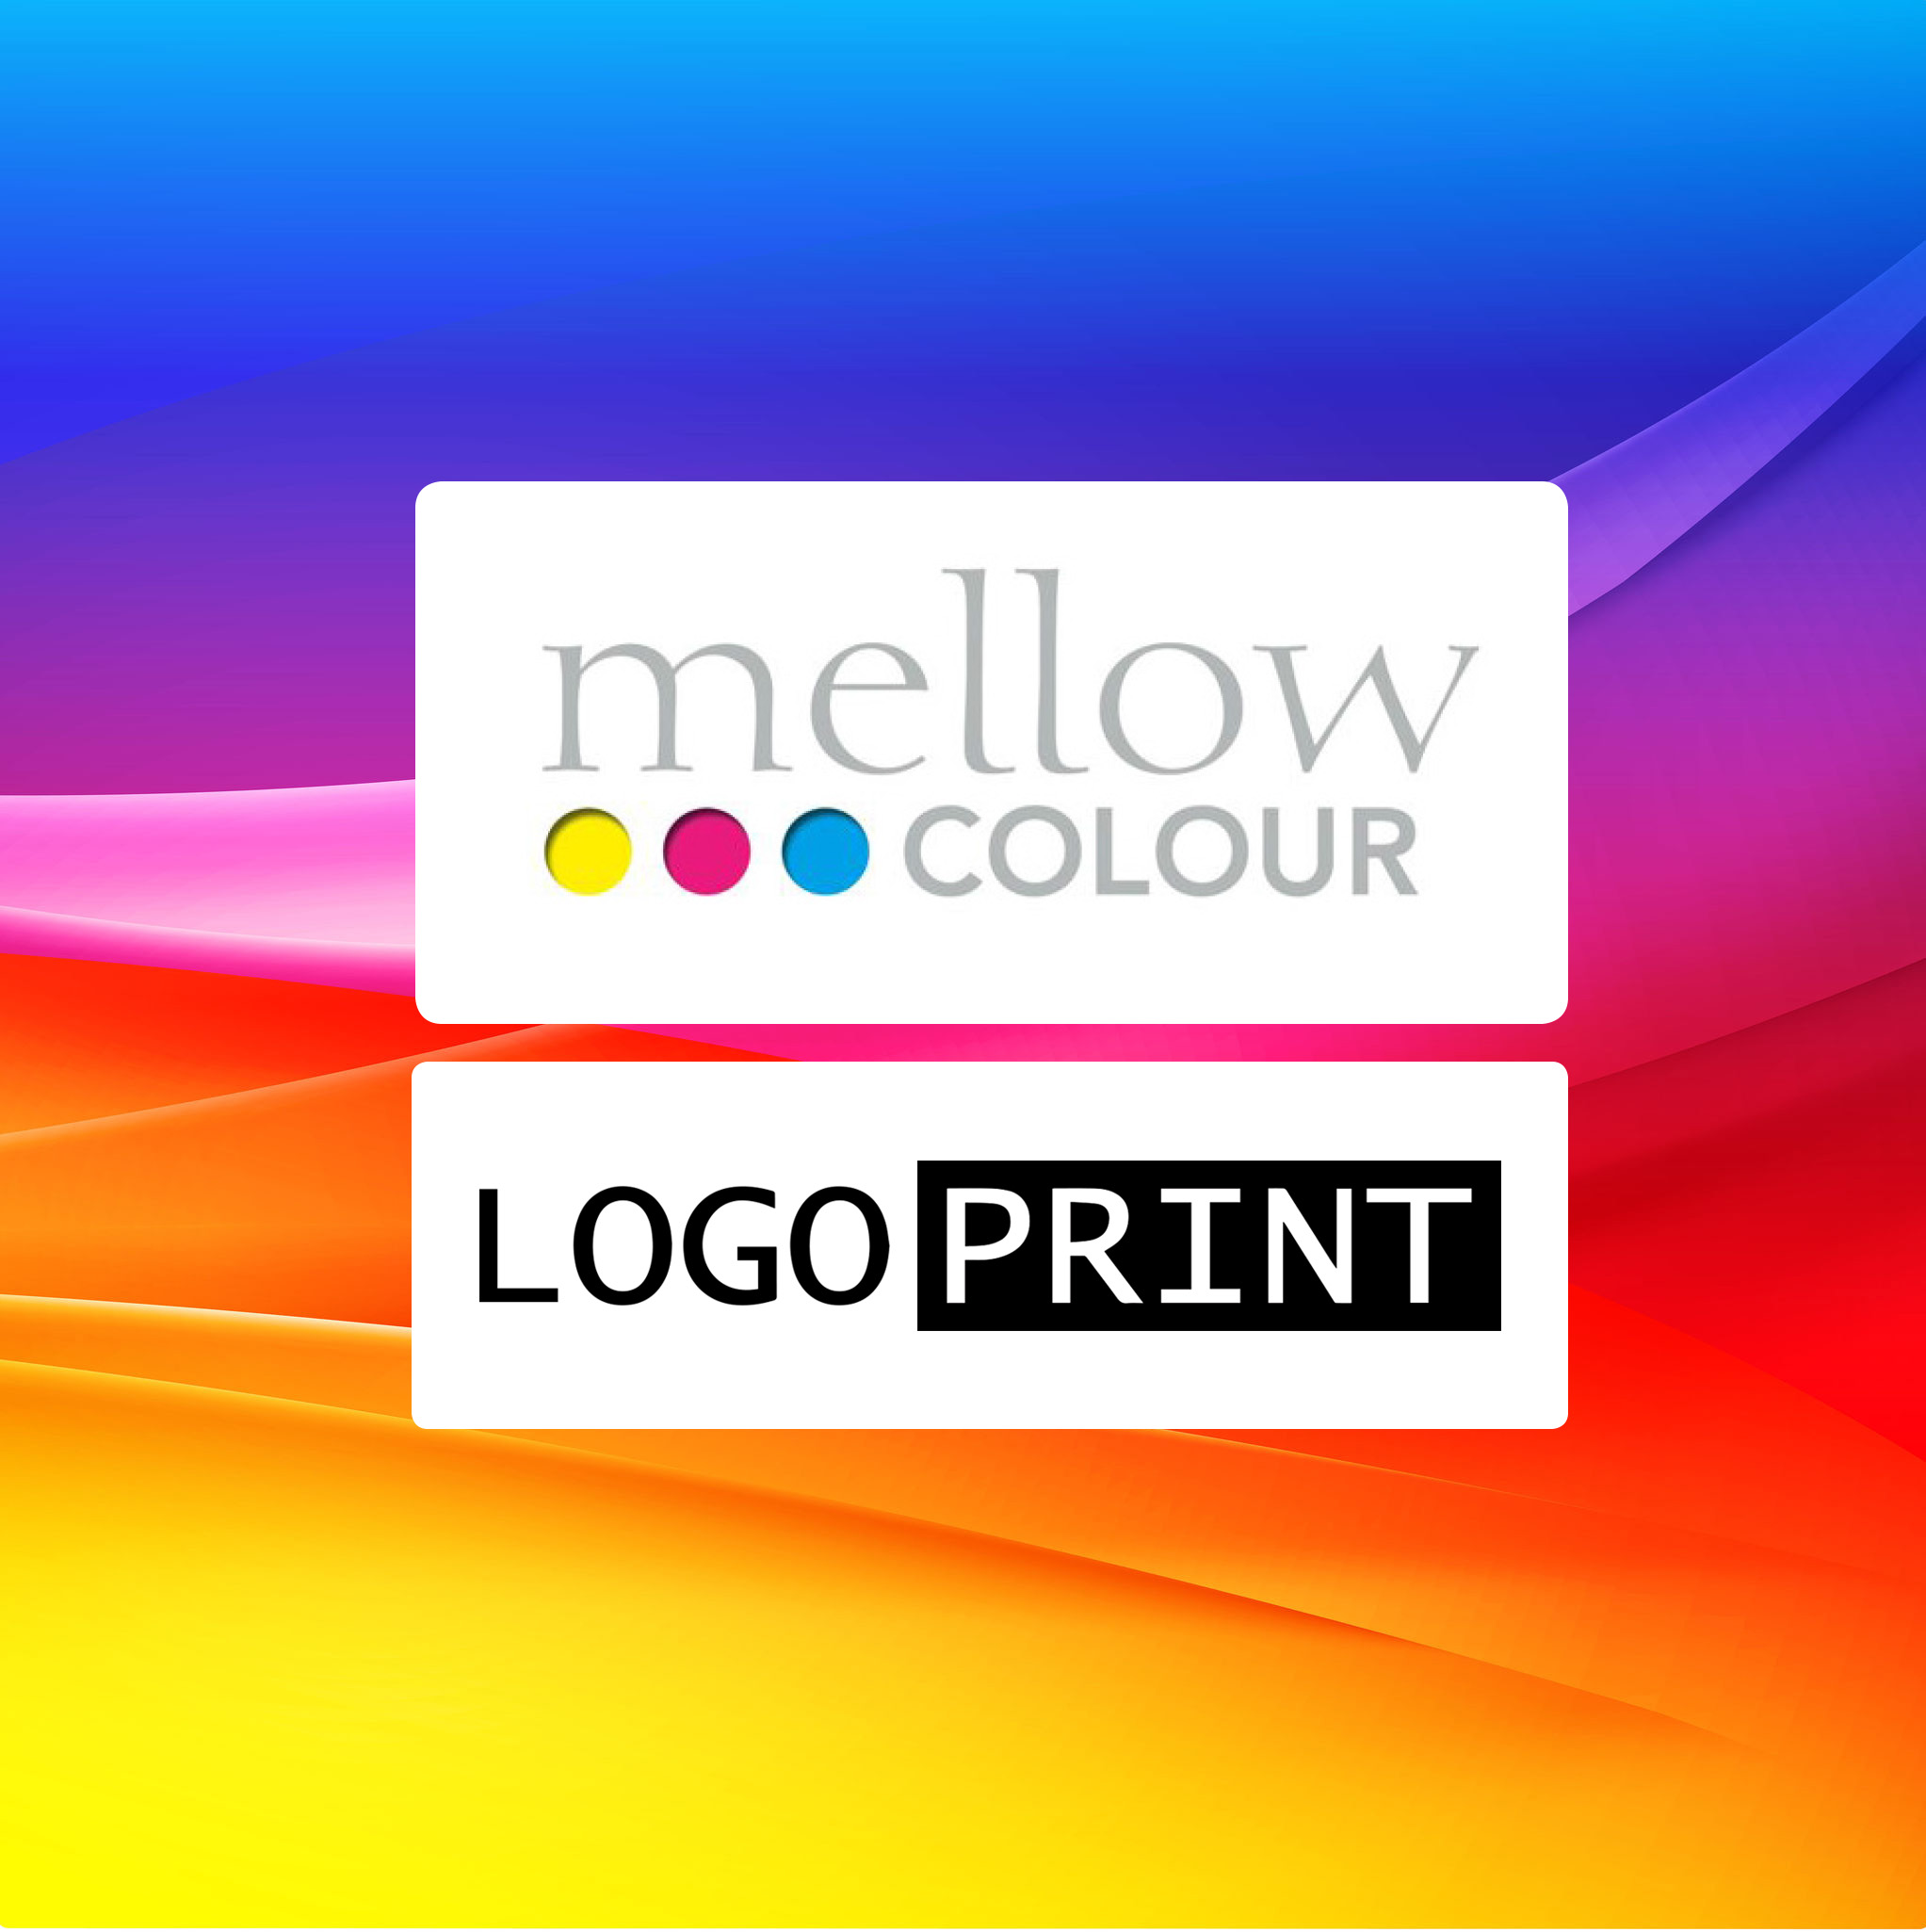 Logo Print is faster